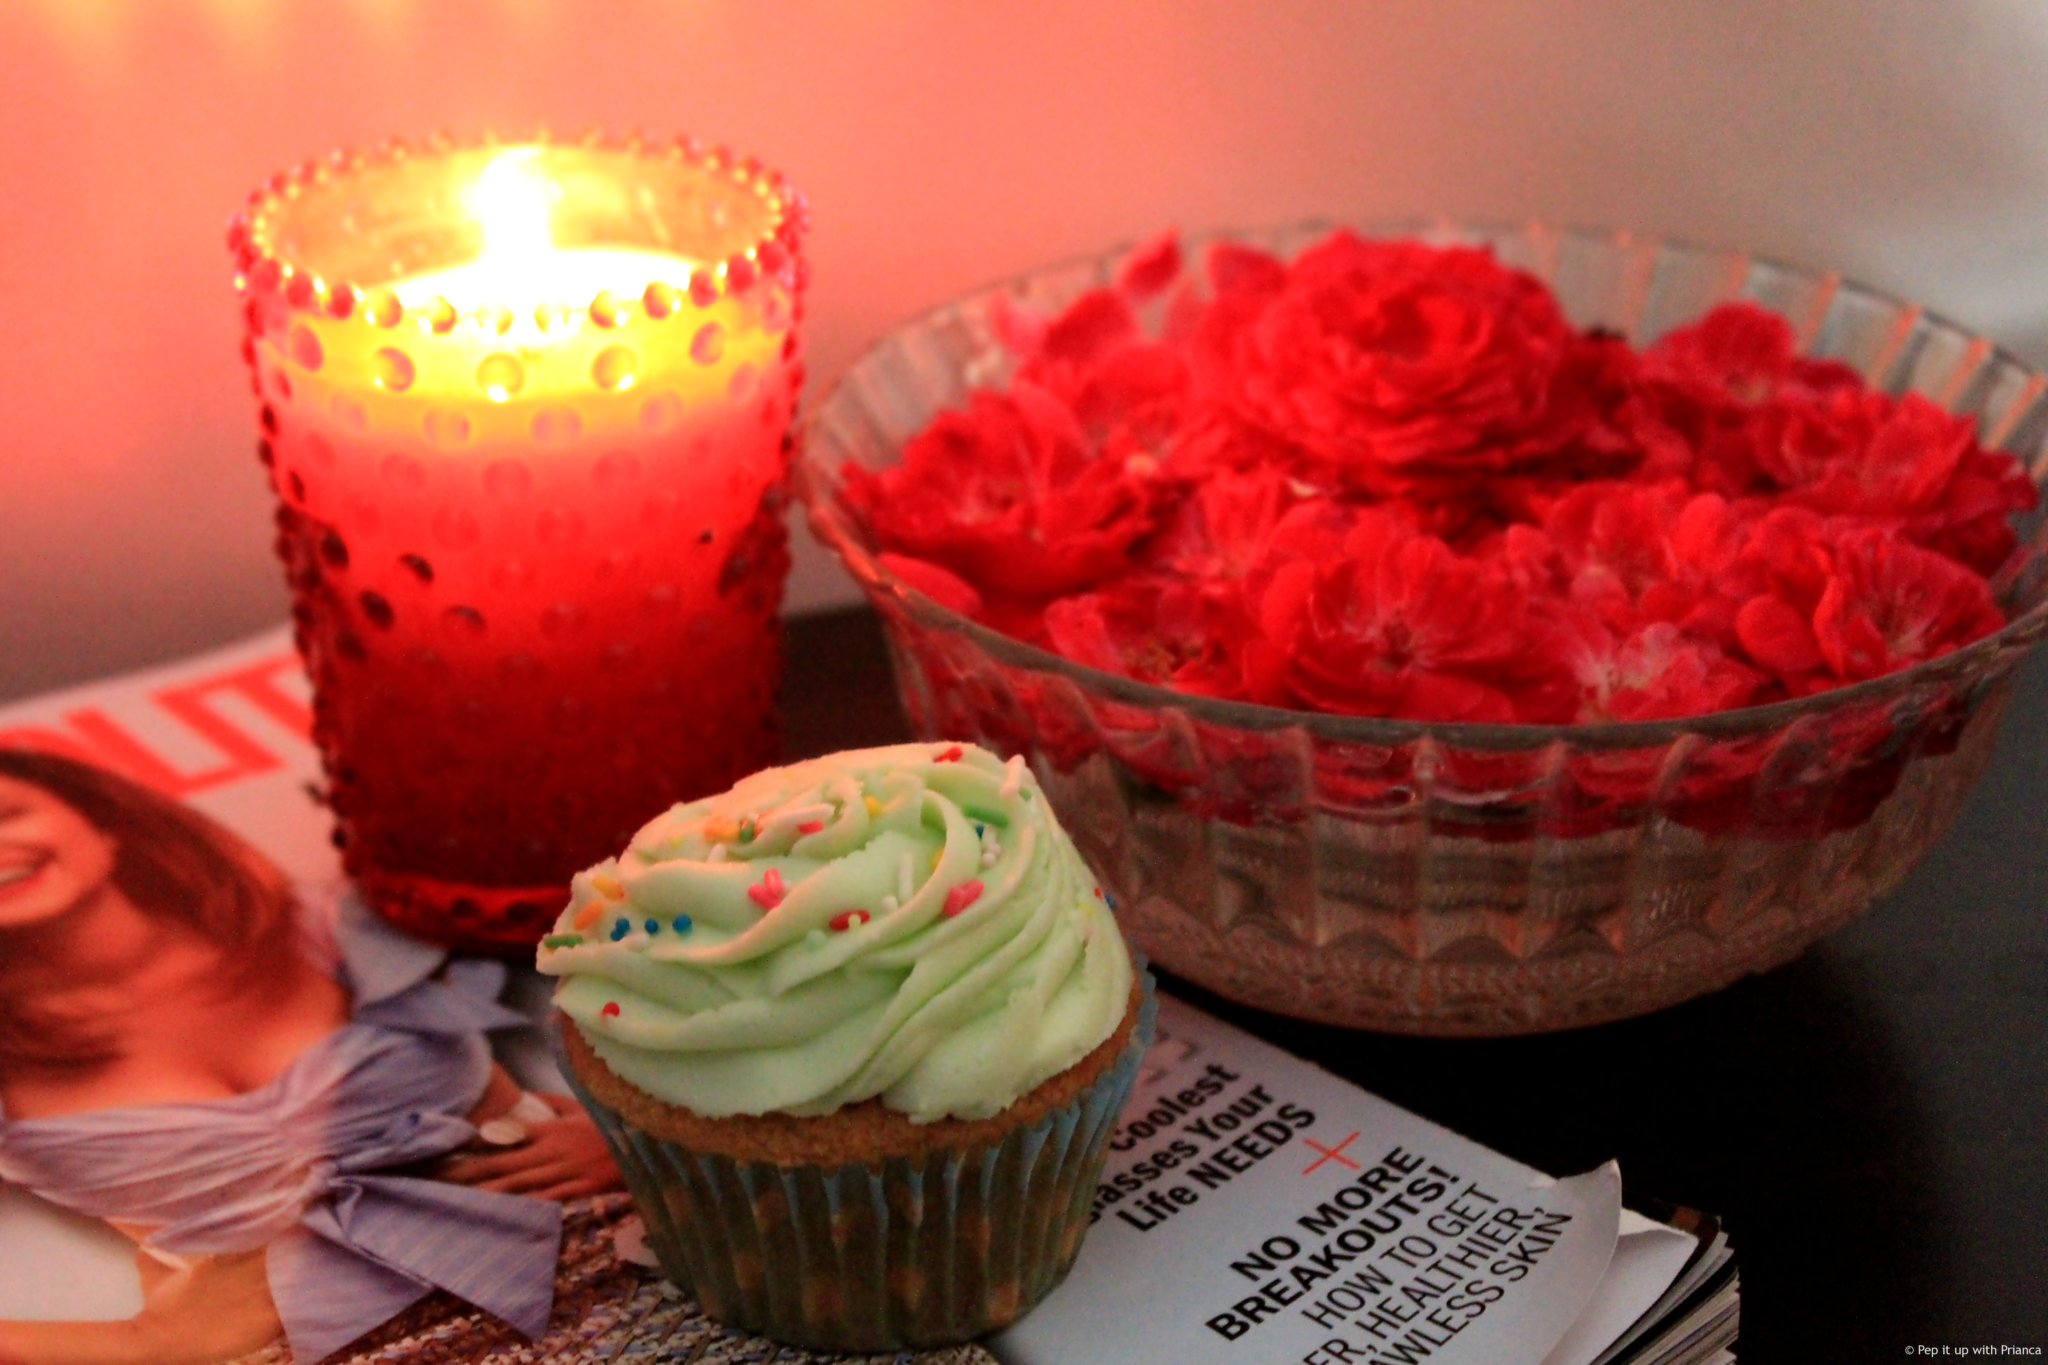 Make people happy… Serve more cupcakes :)